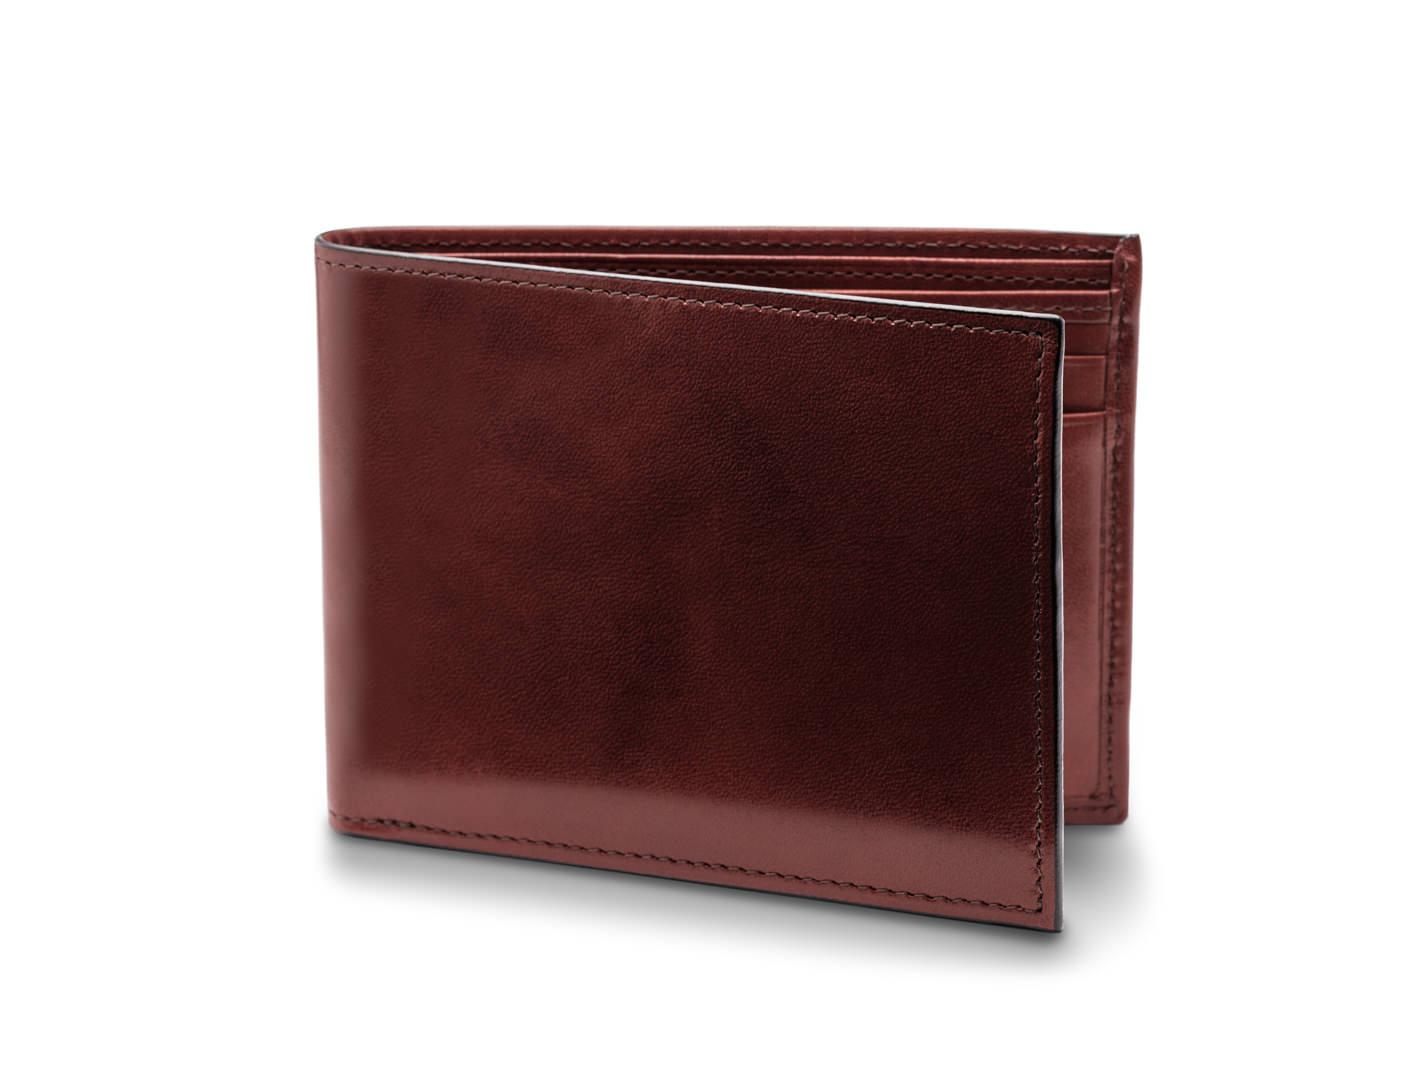 Executive ID Wallet - 58 Dark Brown